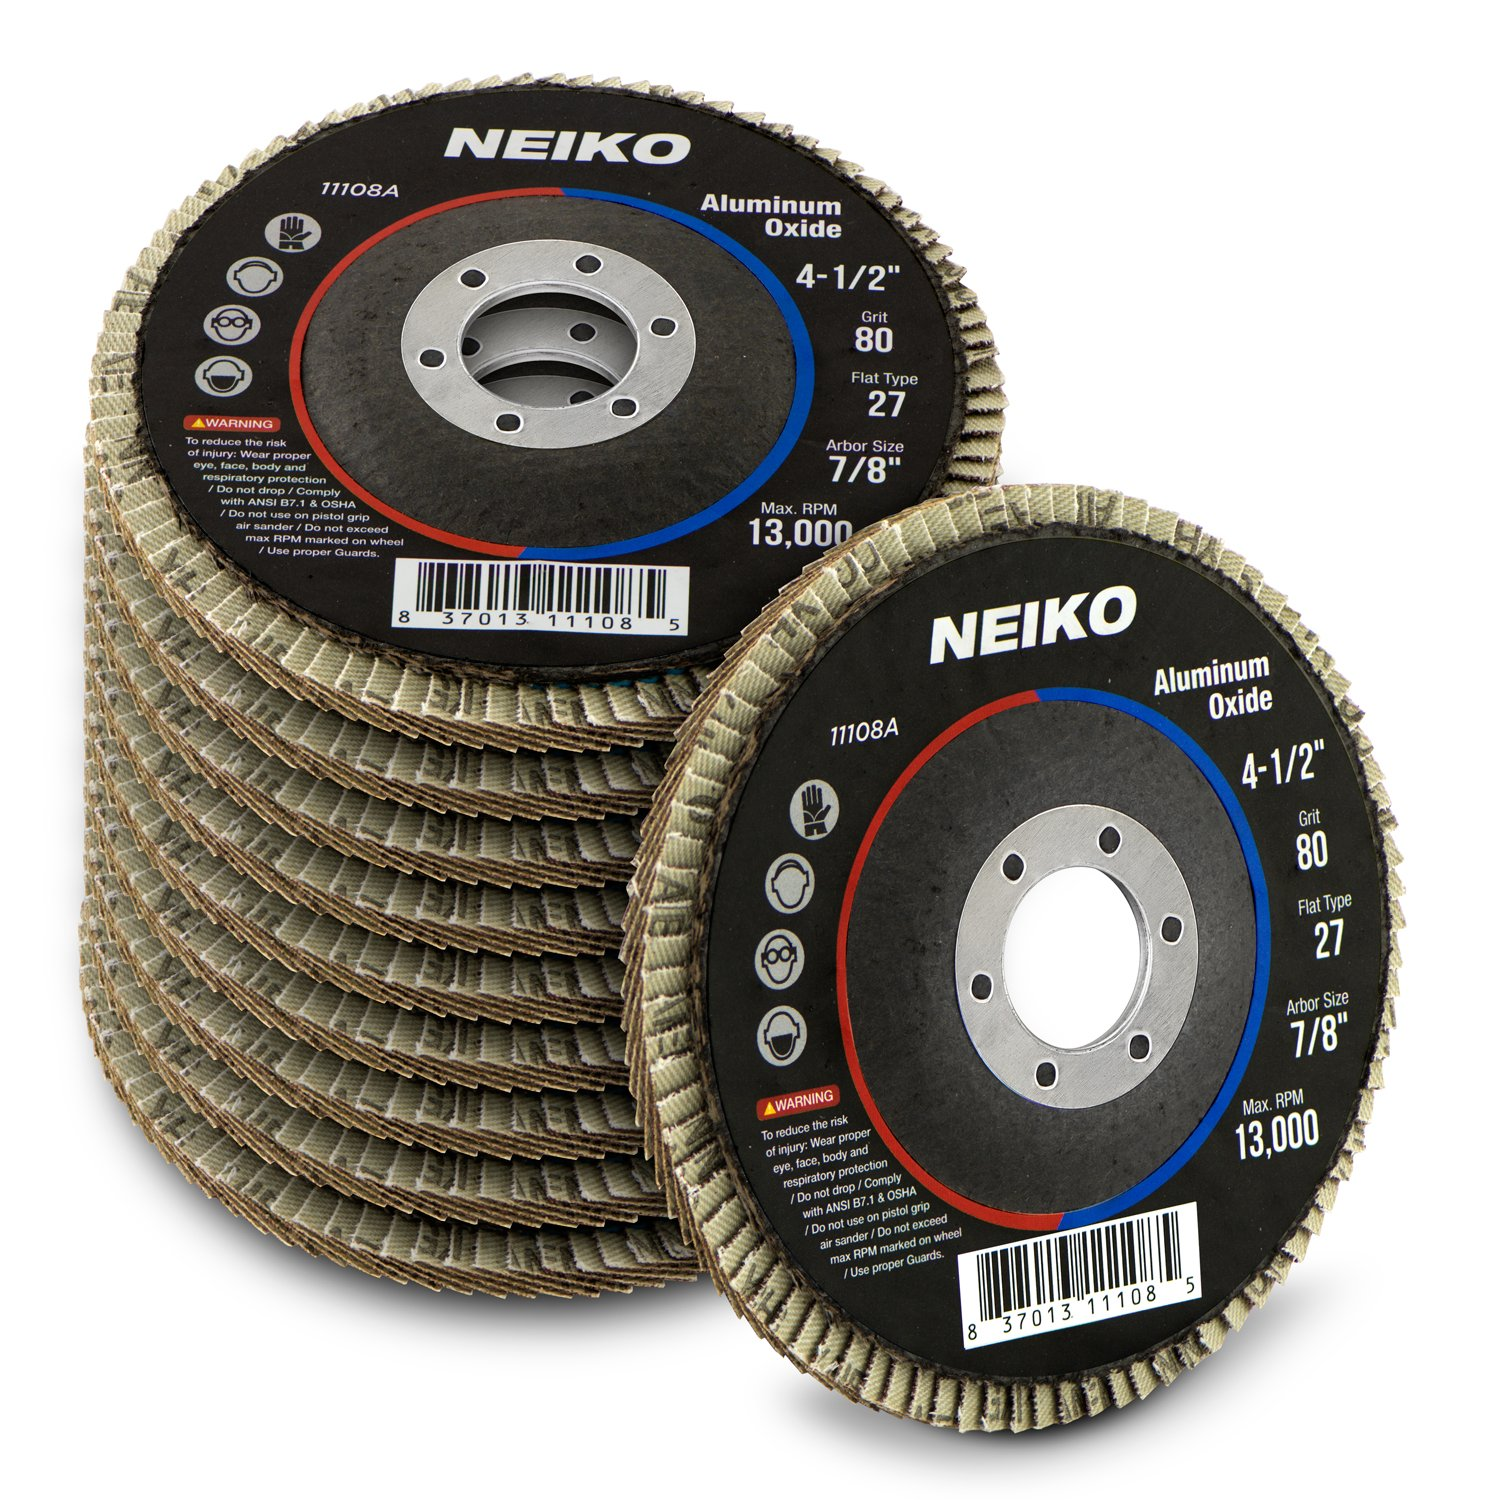 Neiko 11108A Aluminum Oxide Flap Disc | 4.5'' x 7/8-Inch, 80 Grit, Flat Type #27-10 Pack by Neiko